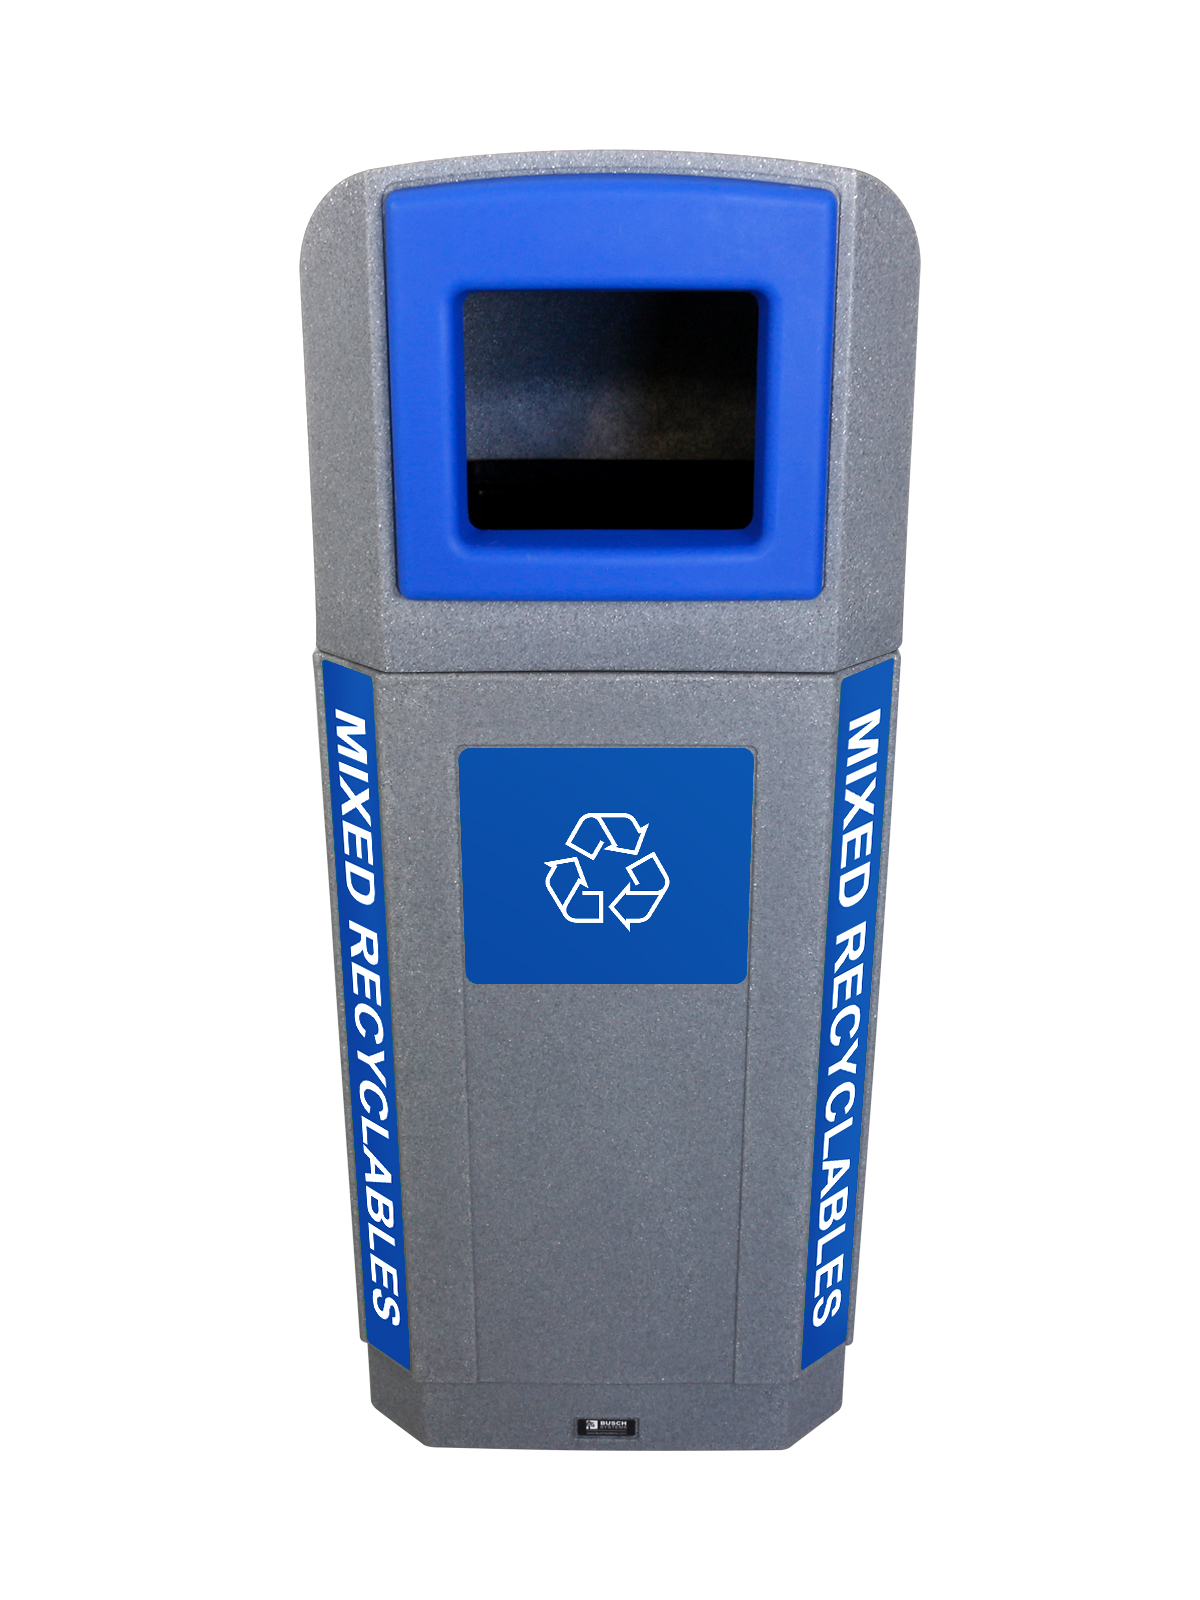 OCTO - Single - Outdoor - Mixed Recyclables  - Full - Greystone-Blue